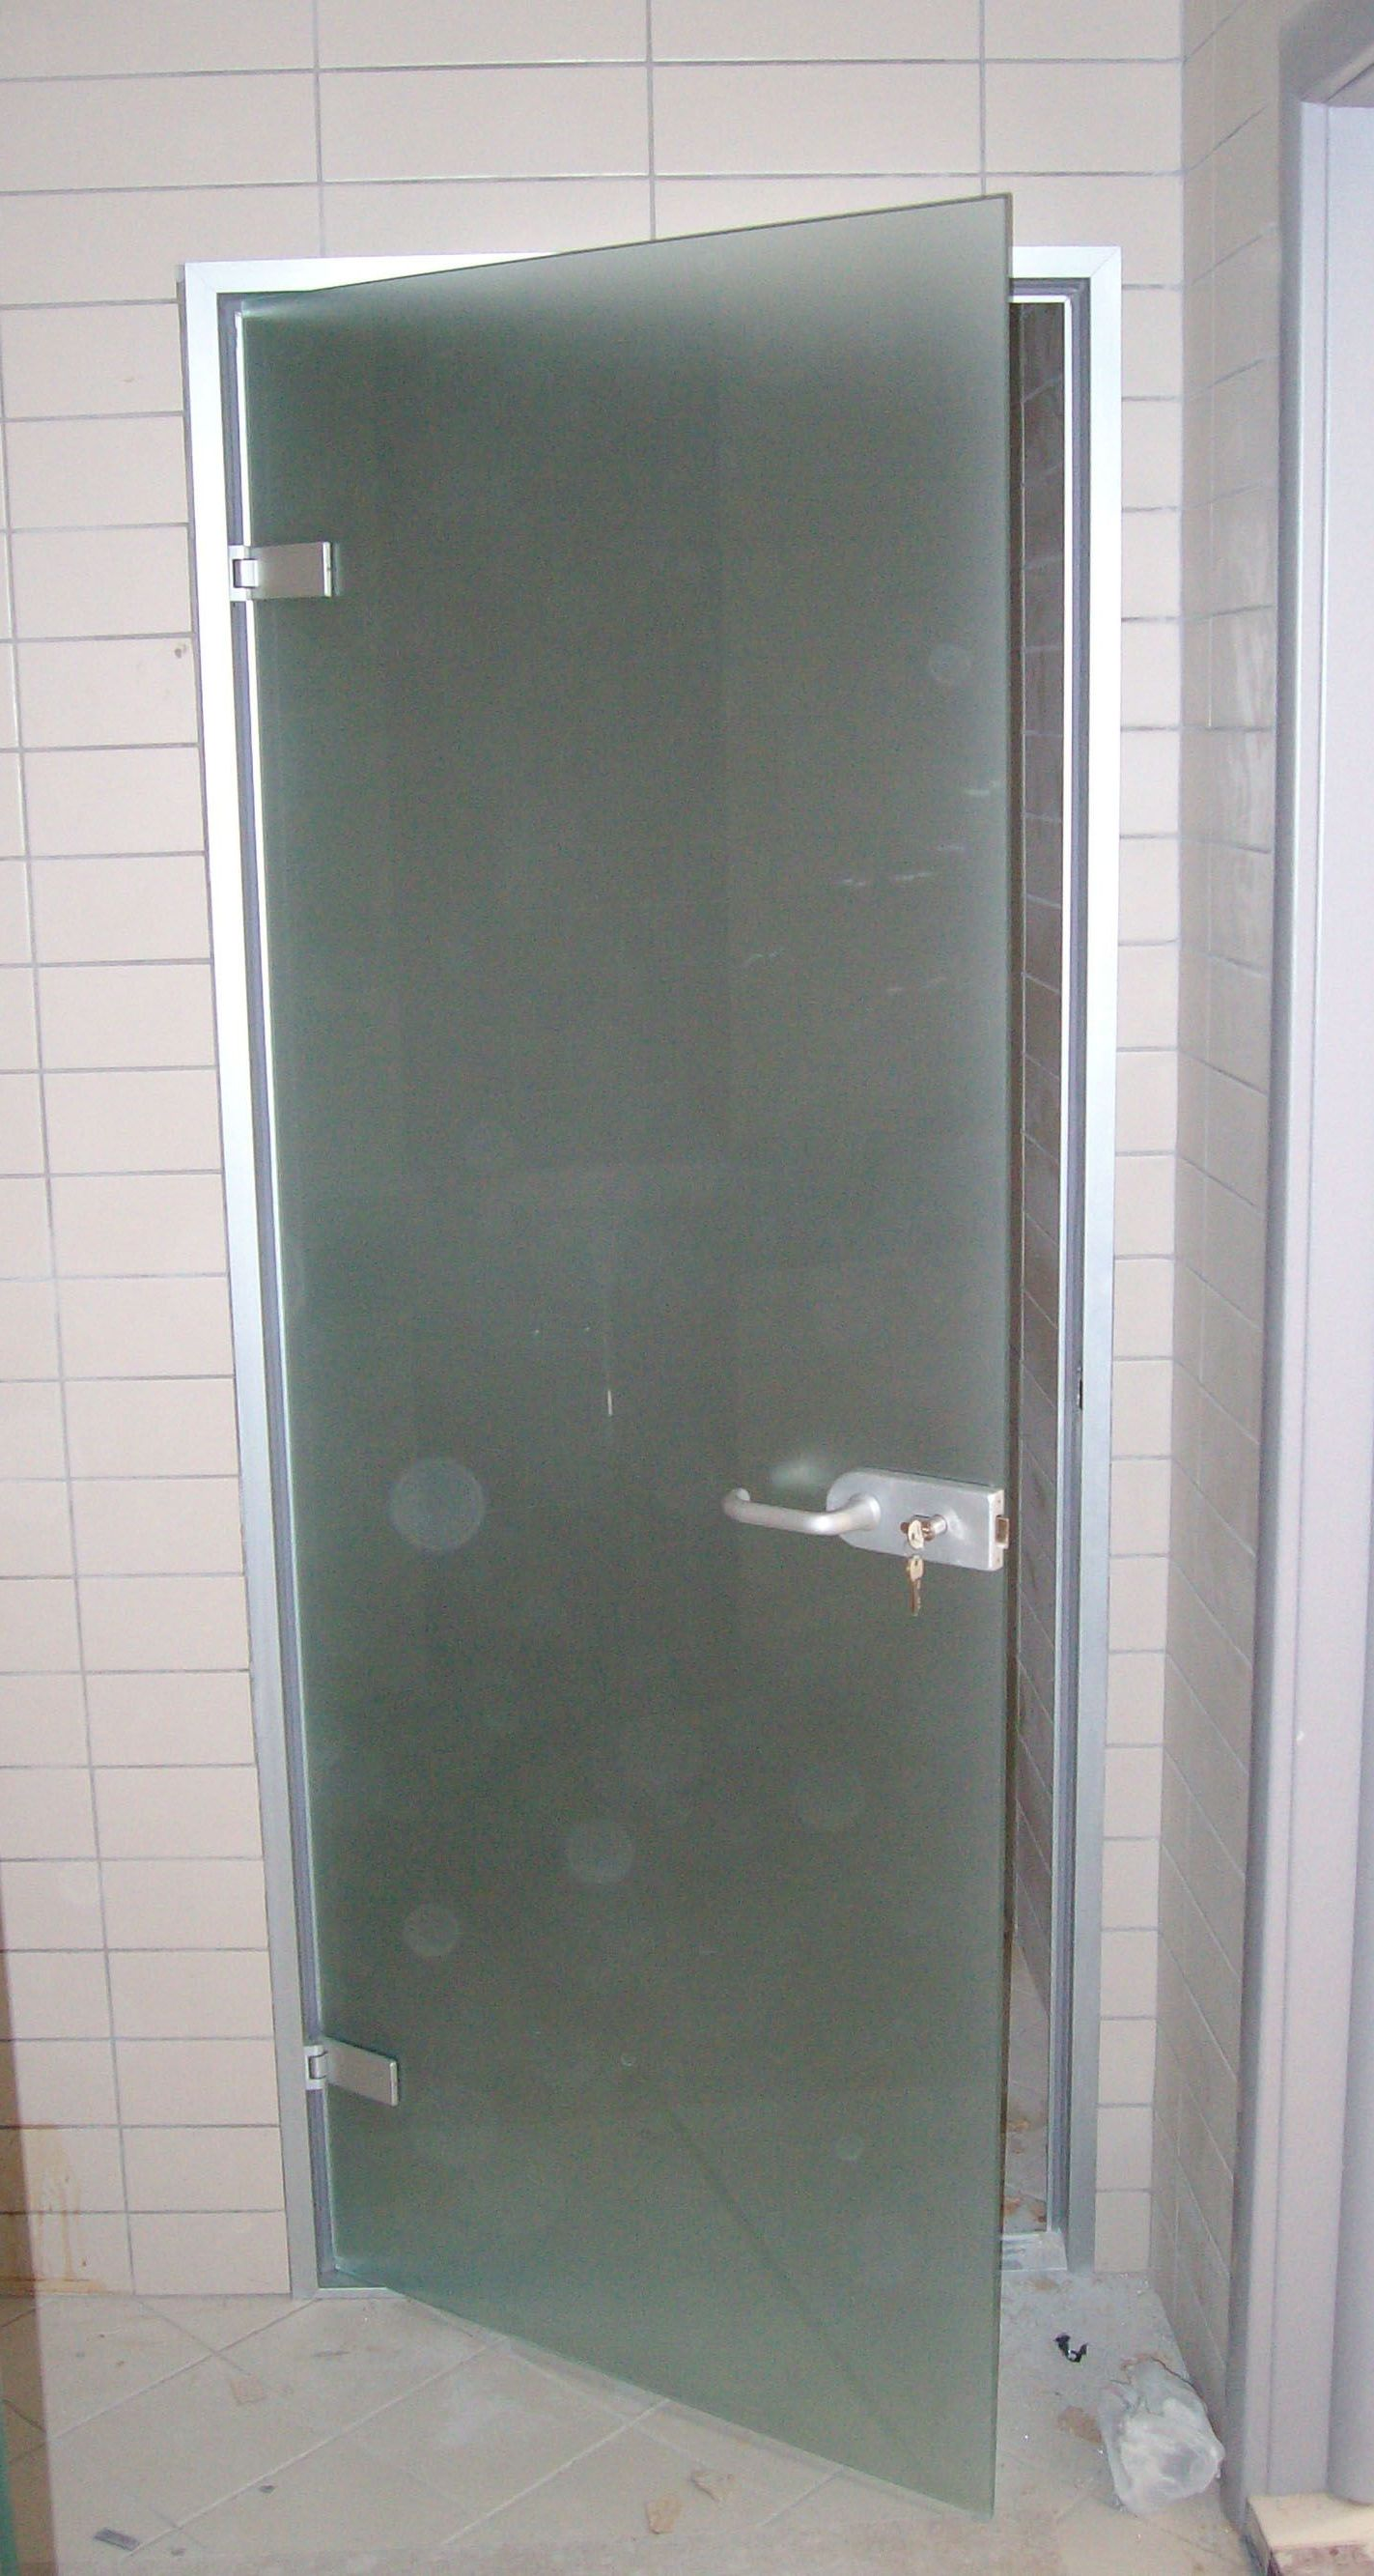 Le Meilleur Toilet Door Upvc Toilet Door Sc 1 St Timbe Windows Ce Mois Ci